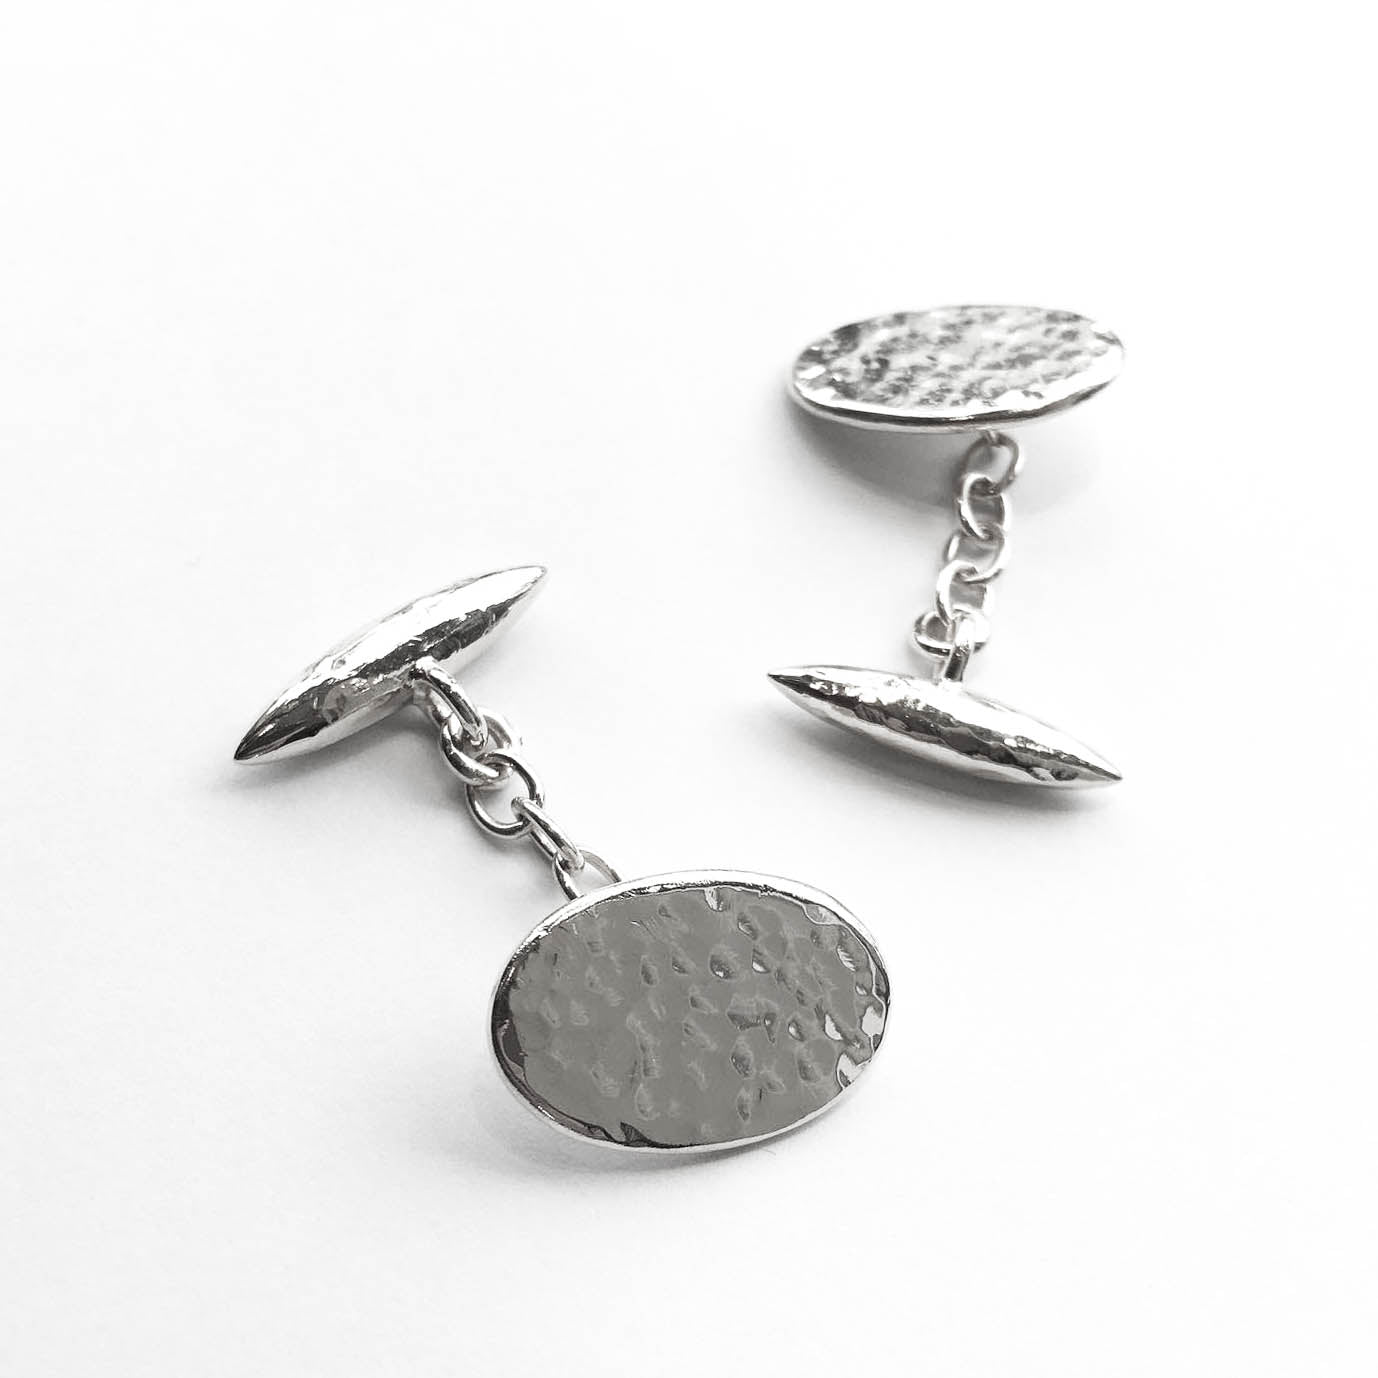 Beaten Bullet & Hammered Oval Cufflinks